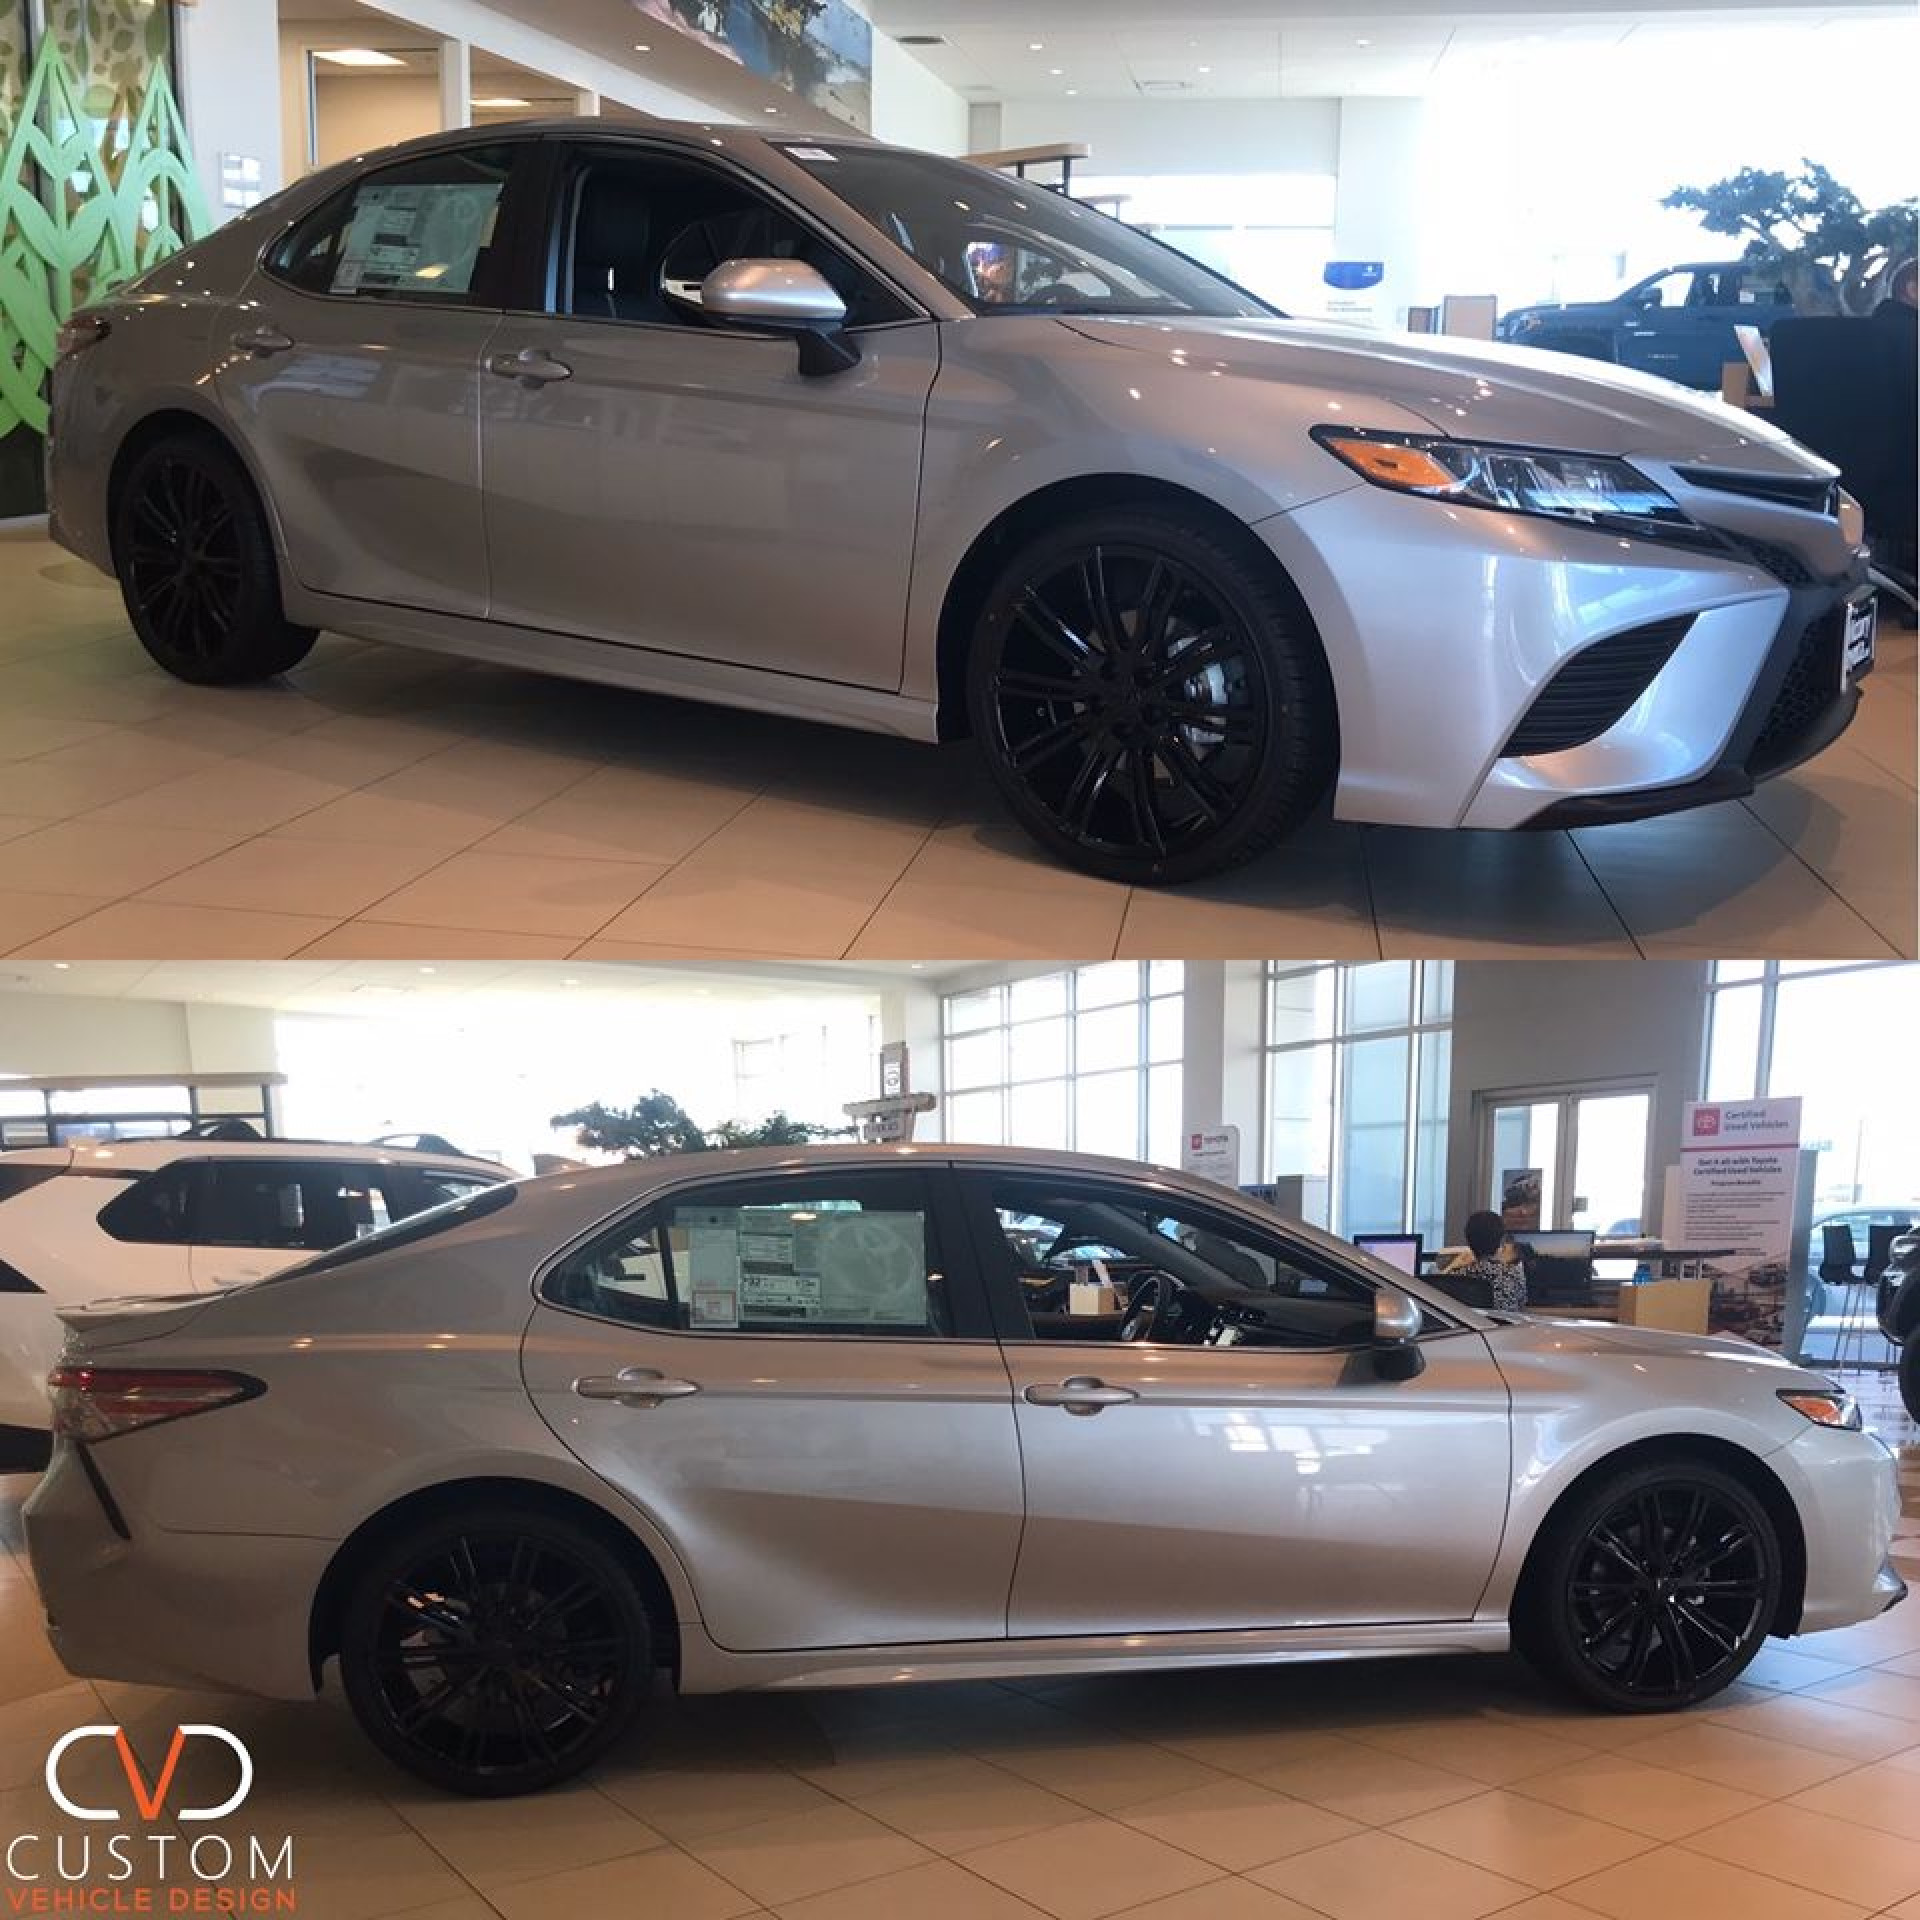 "2019 Toyota Camry With 20"" VT386 Vogue wheels"